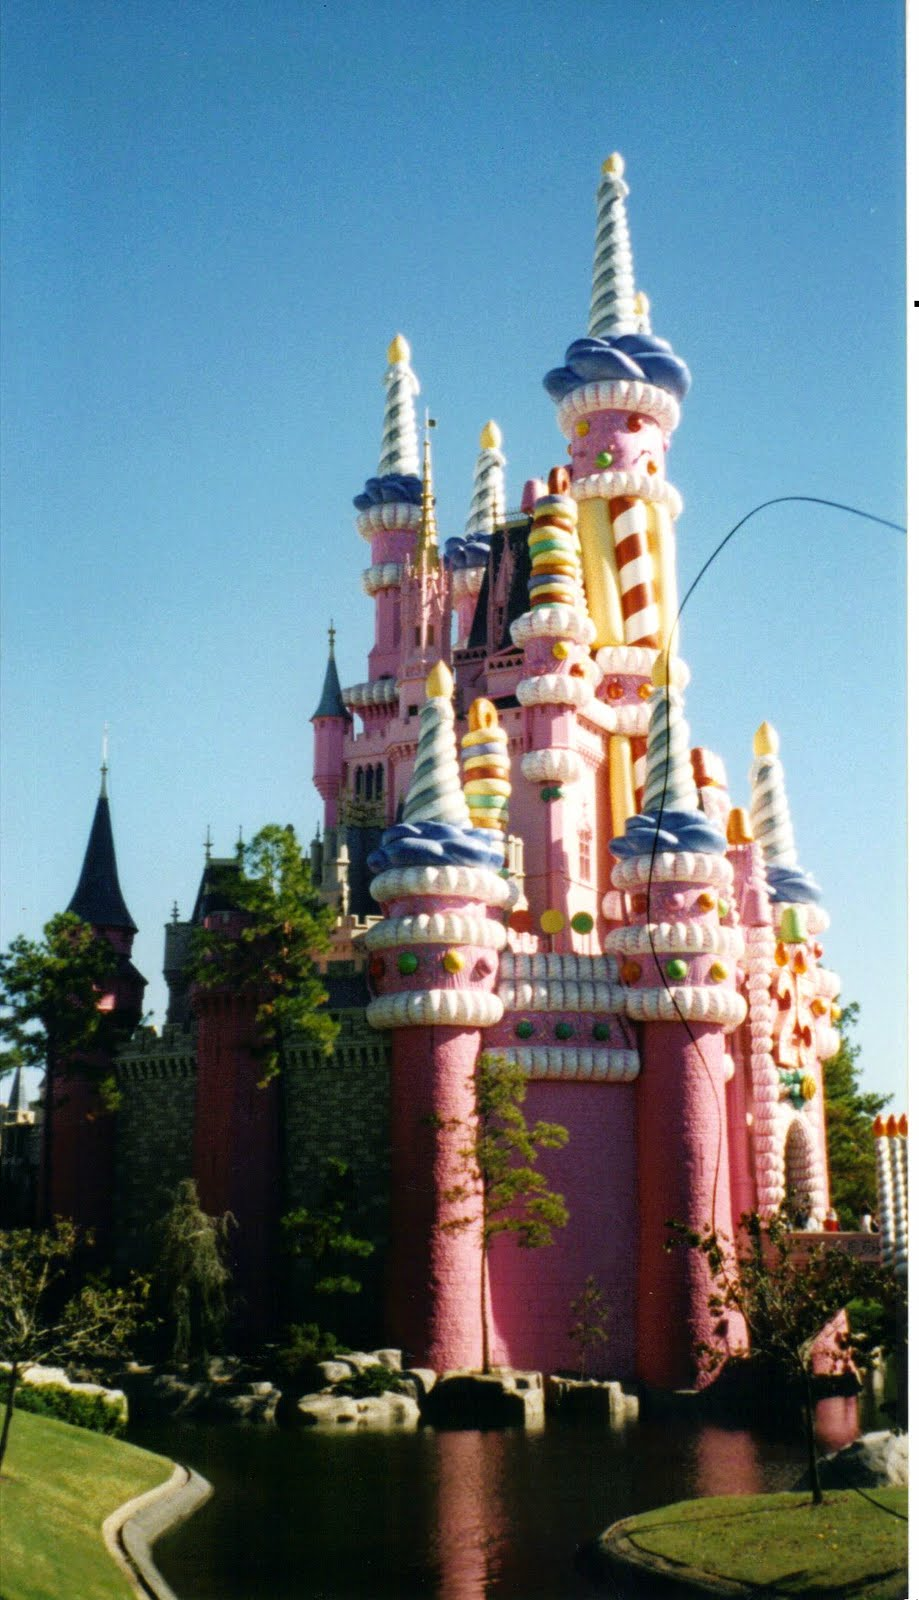 Birthday Cake Castle Disney Disney has done some odd things over the years but this has to rank up there ...